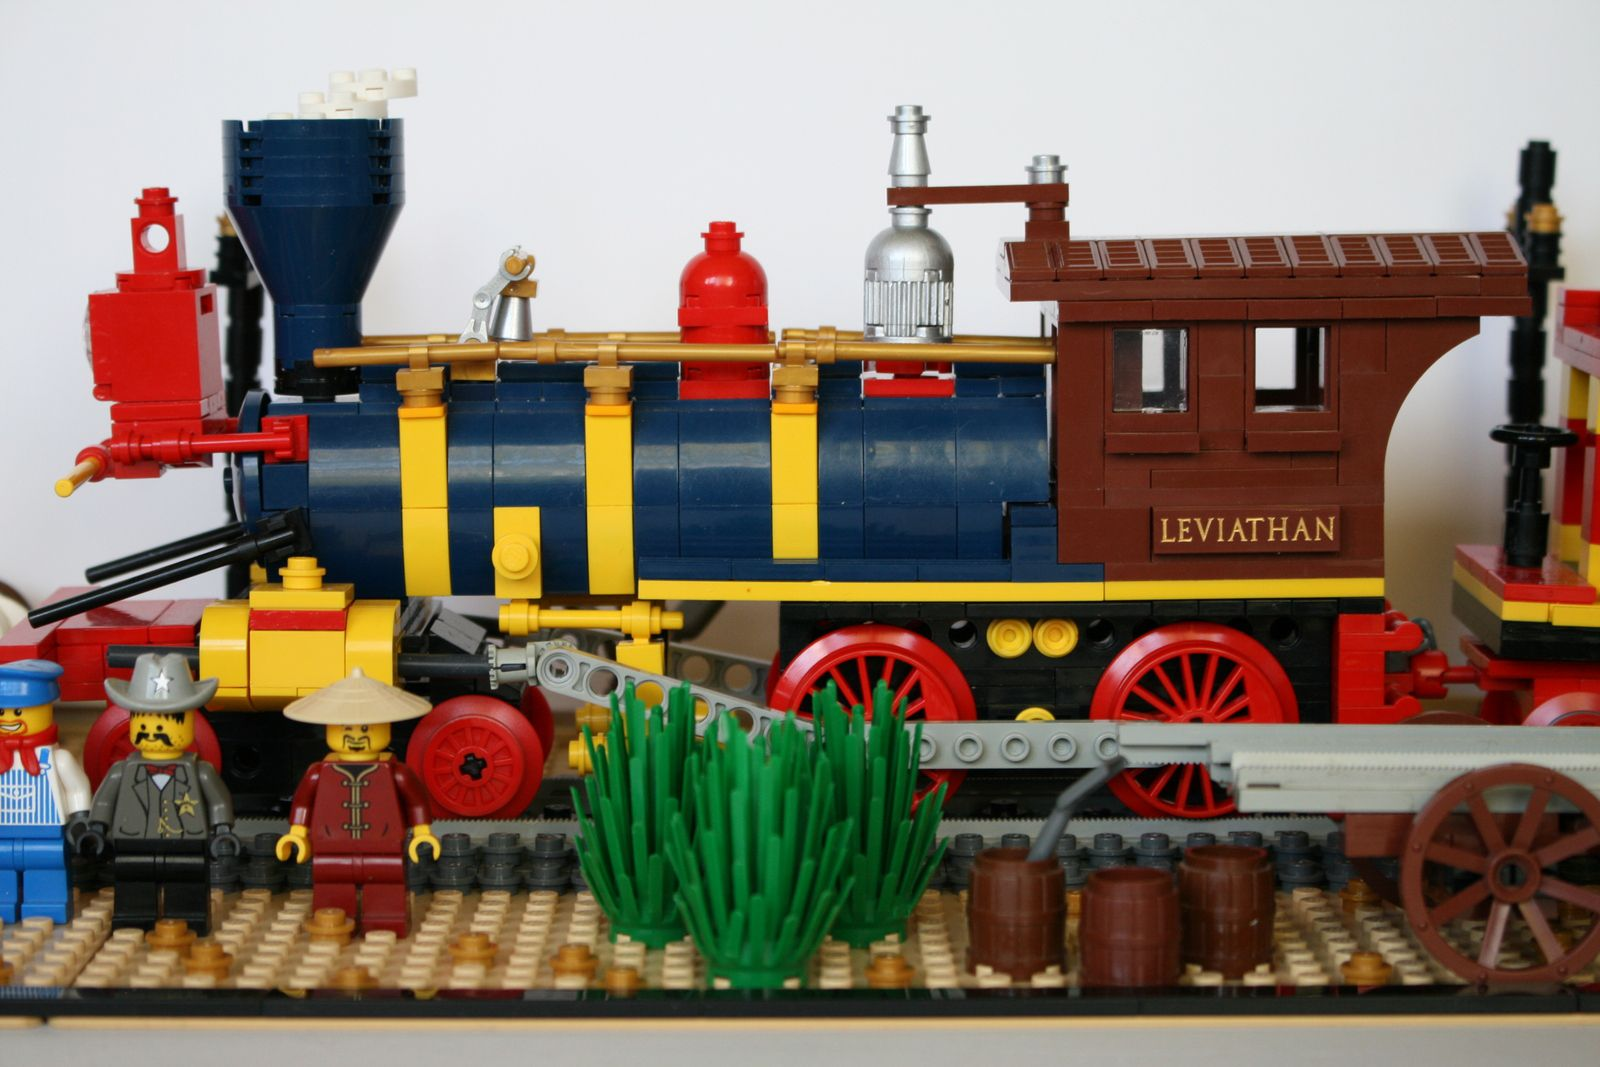 The First Transcontinental Railroad 1863 - 1869